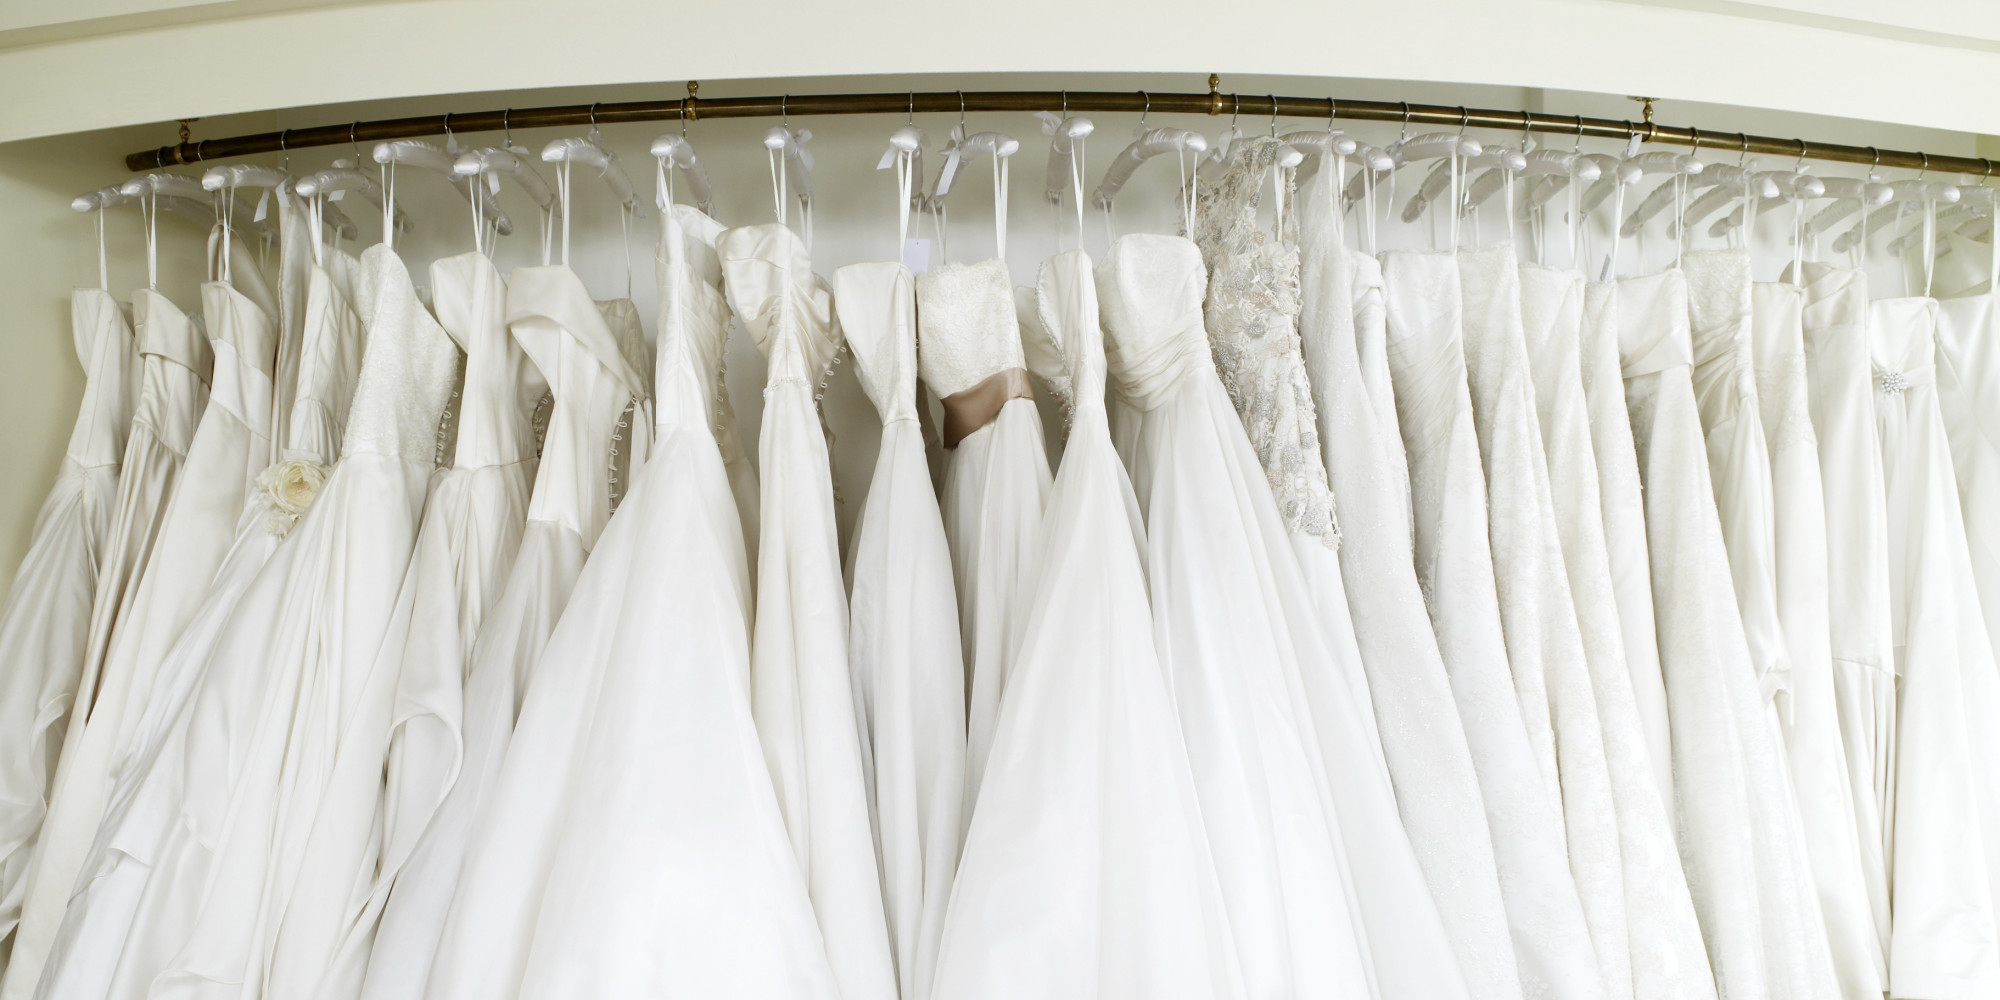 Best Bridal Stores In Toronto: Top Eight Wedding Dress Salons